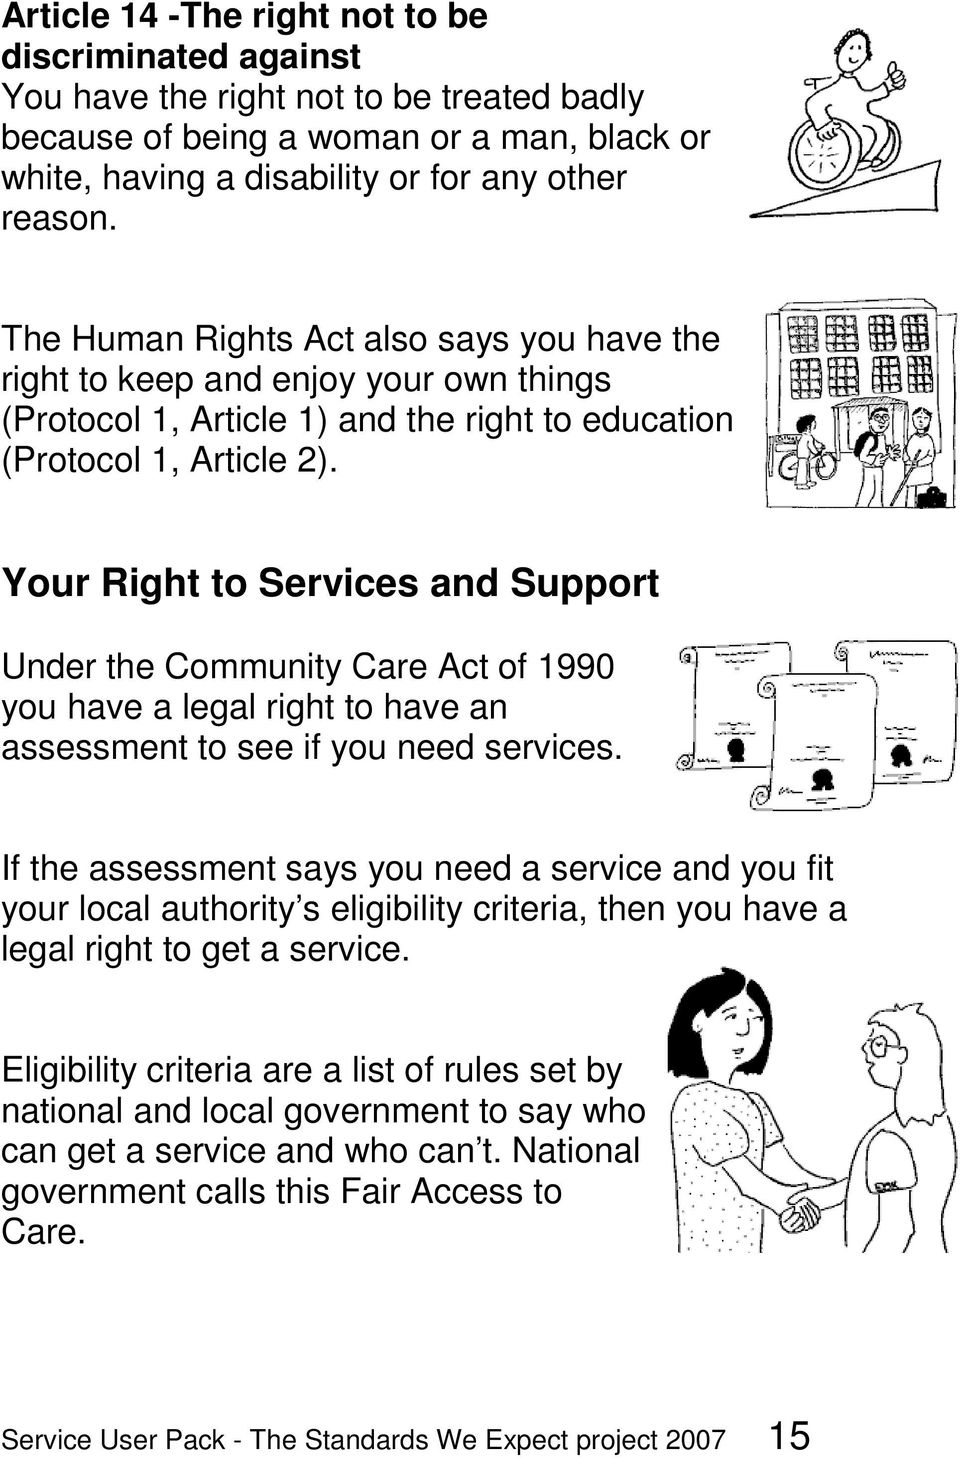 Your Right to Services and Support Under the Community Care Act of 1990 you have a legal right to have an assessment to see if you need services.